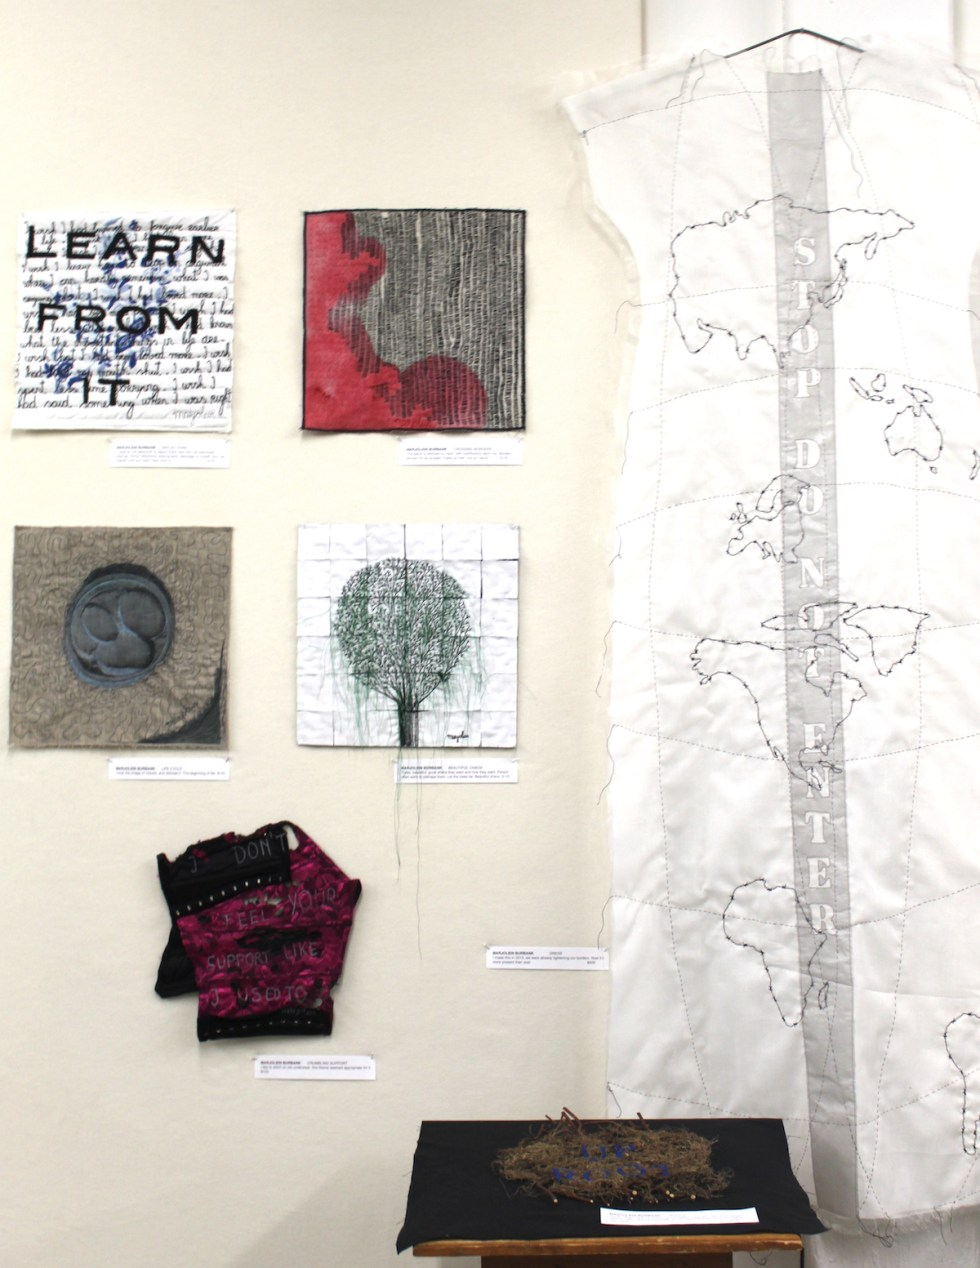 Marjolein Burbank: Reflections, Crossing Borders (Top row); Life Cycle, Beautiful Chaos (Middle row); Crumbling support (Bottom row), Roots (on pedestal) and The Dress